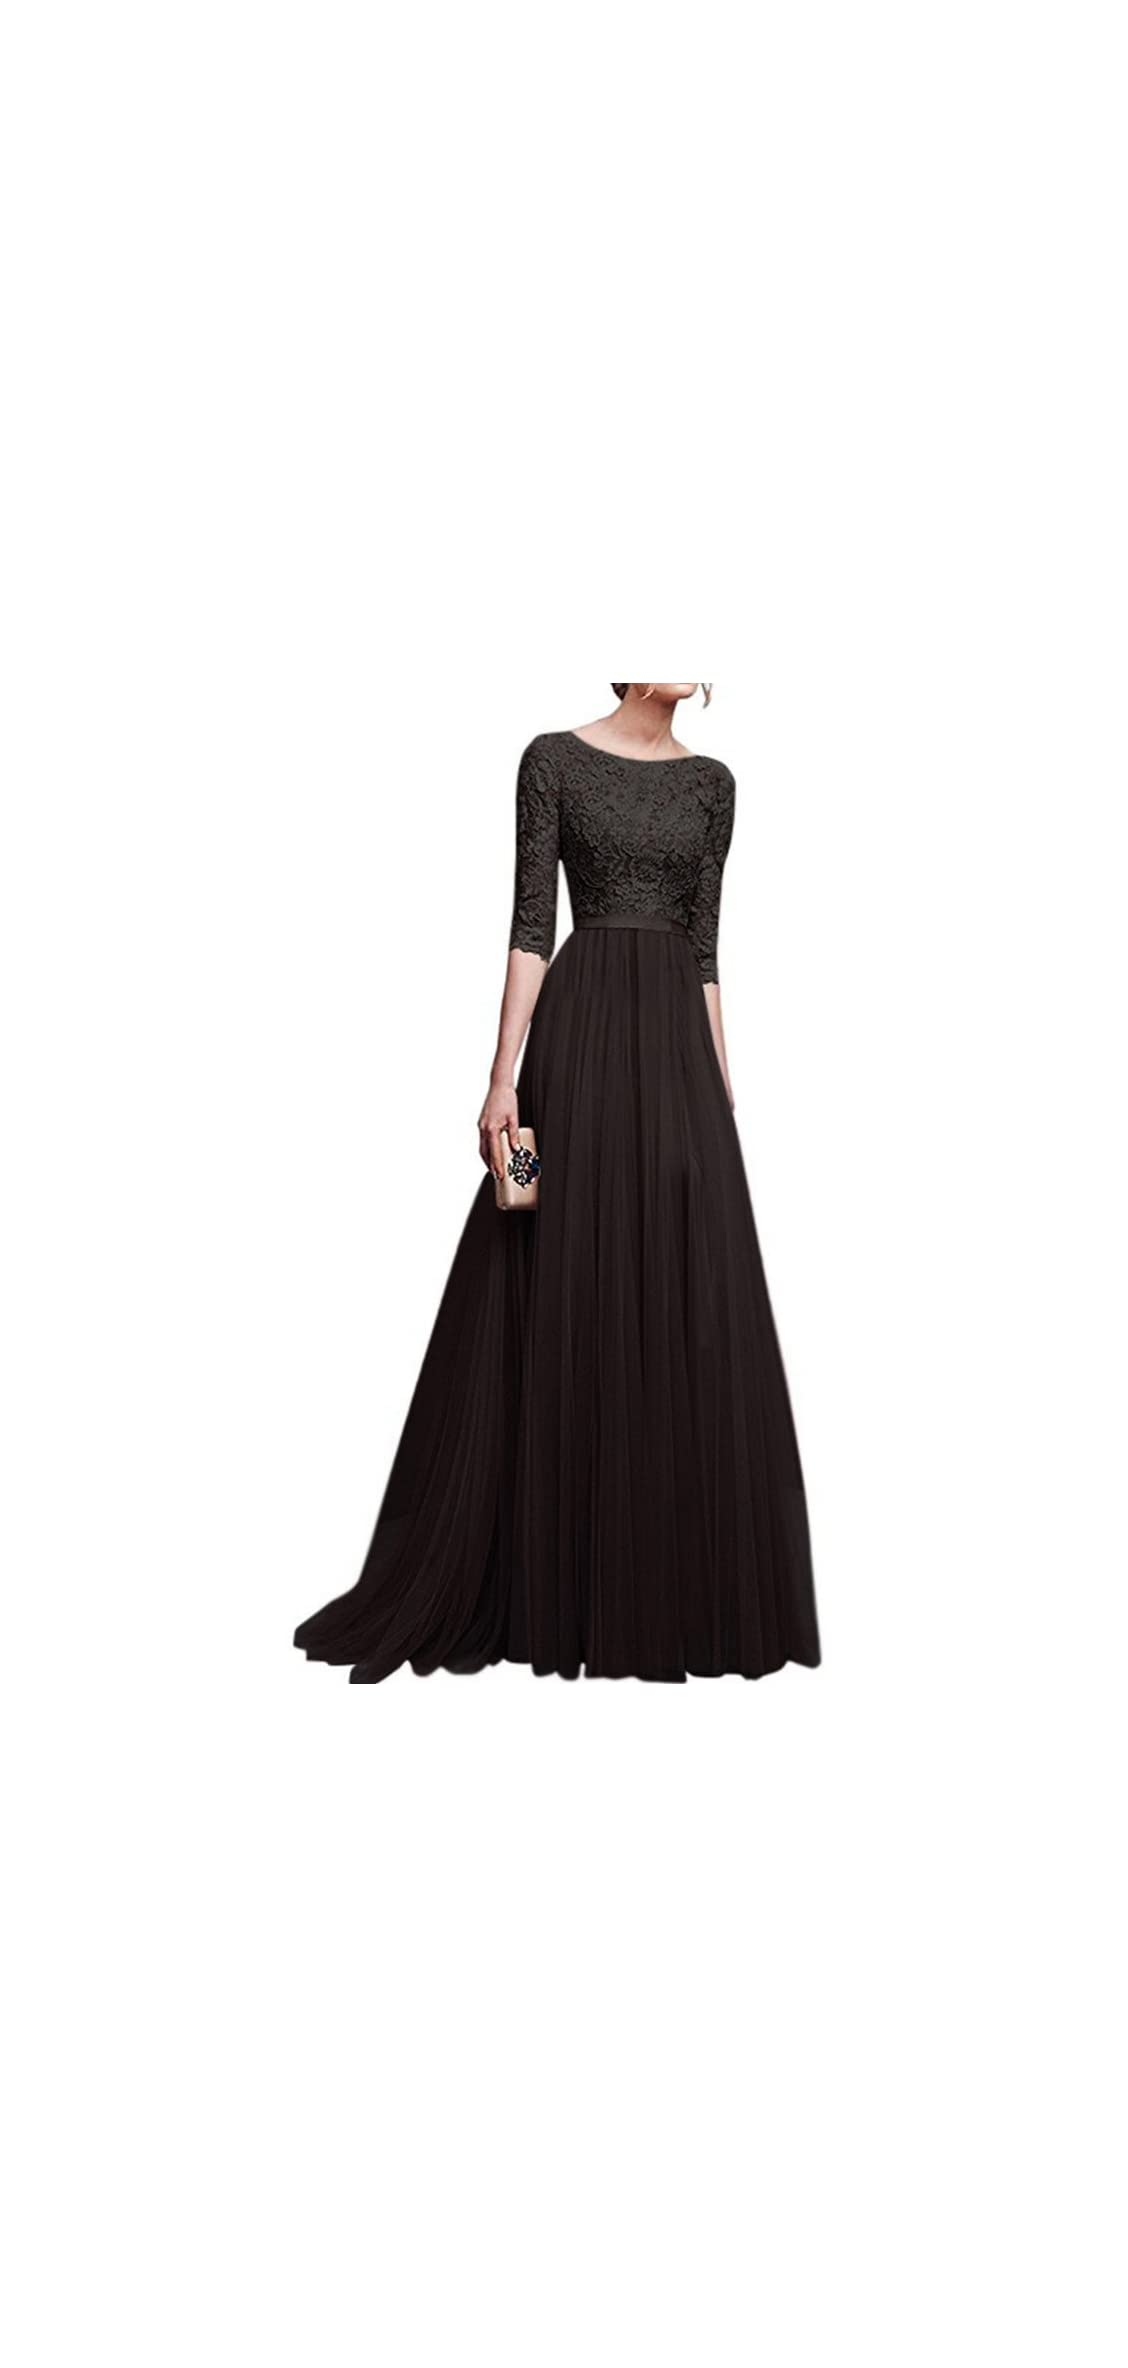 Women's Vintage Floral Lace / Sleeves Floor Length Retro Gown